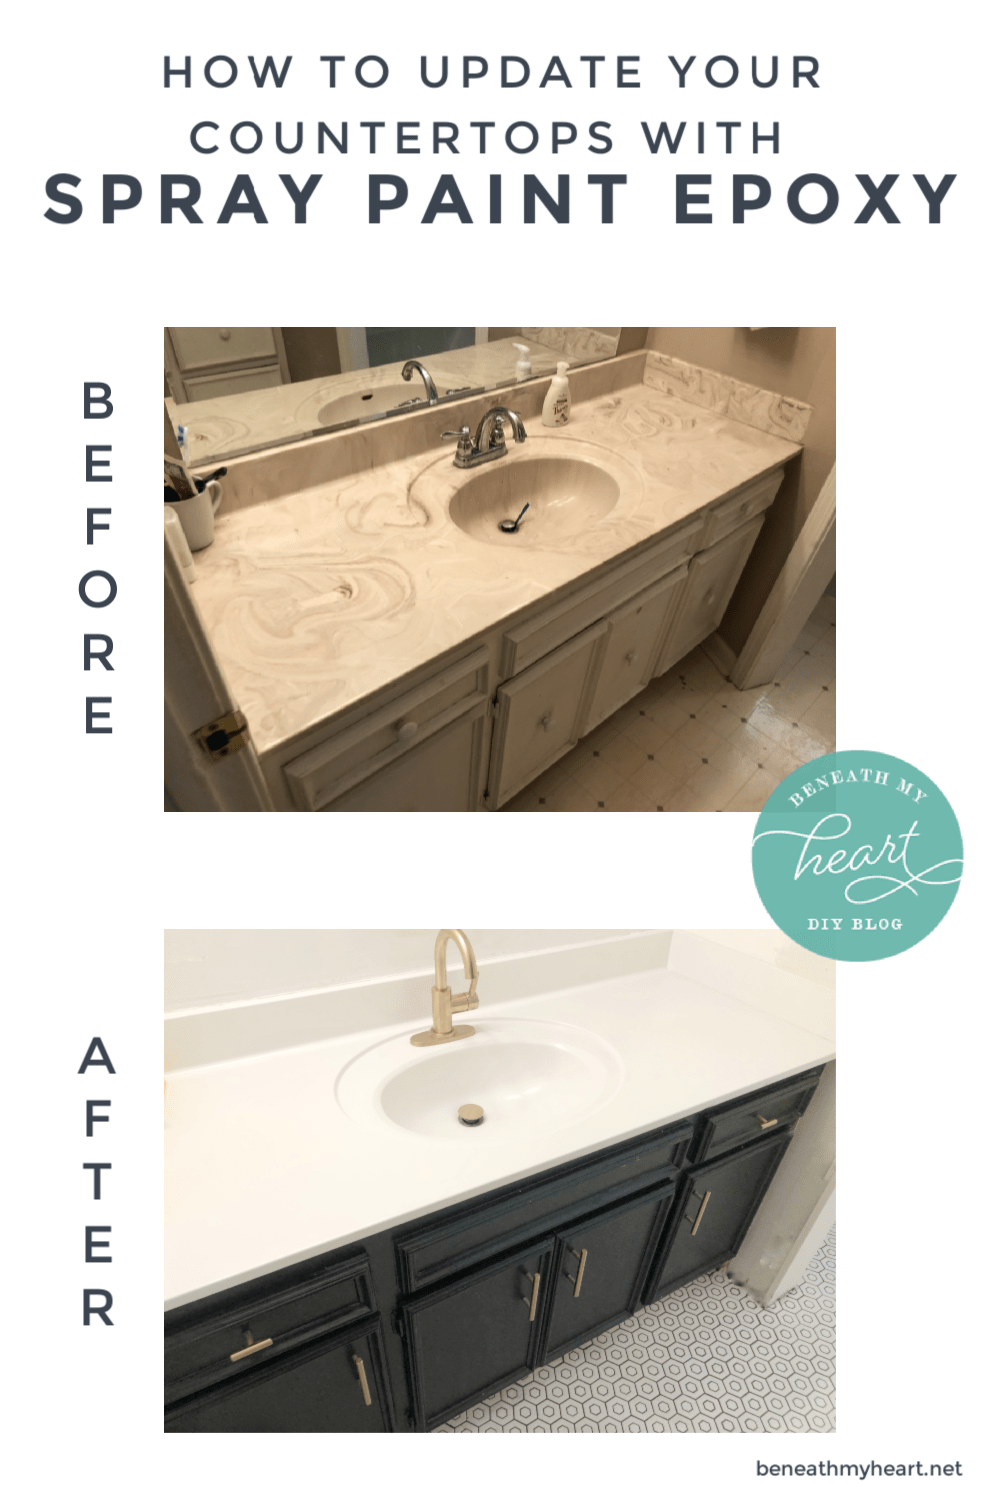 countertops with appliance epoxy